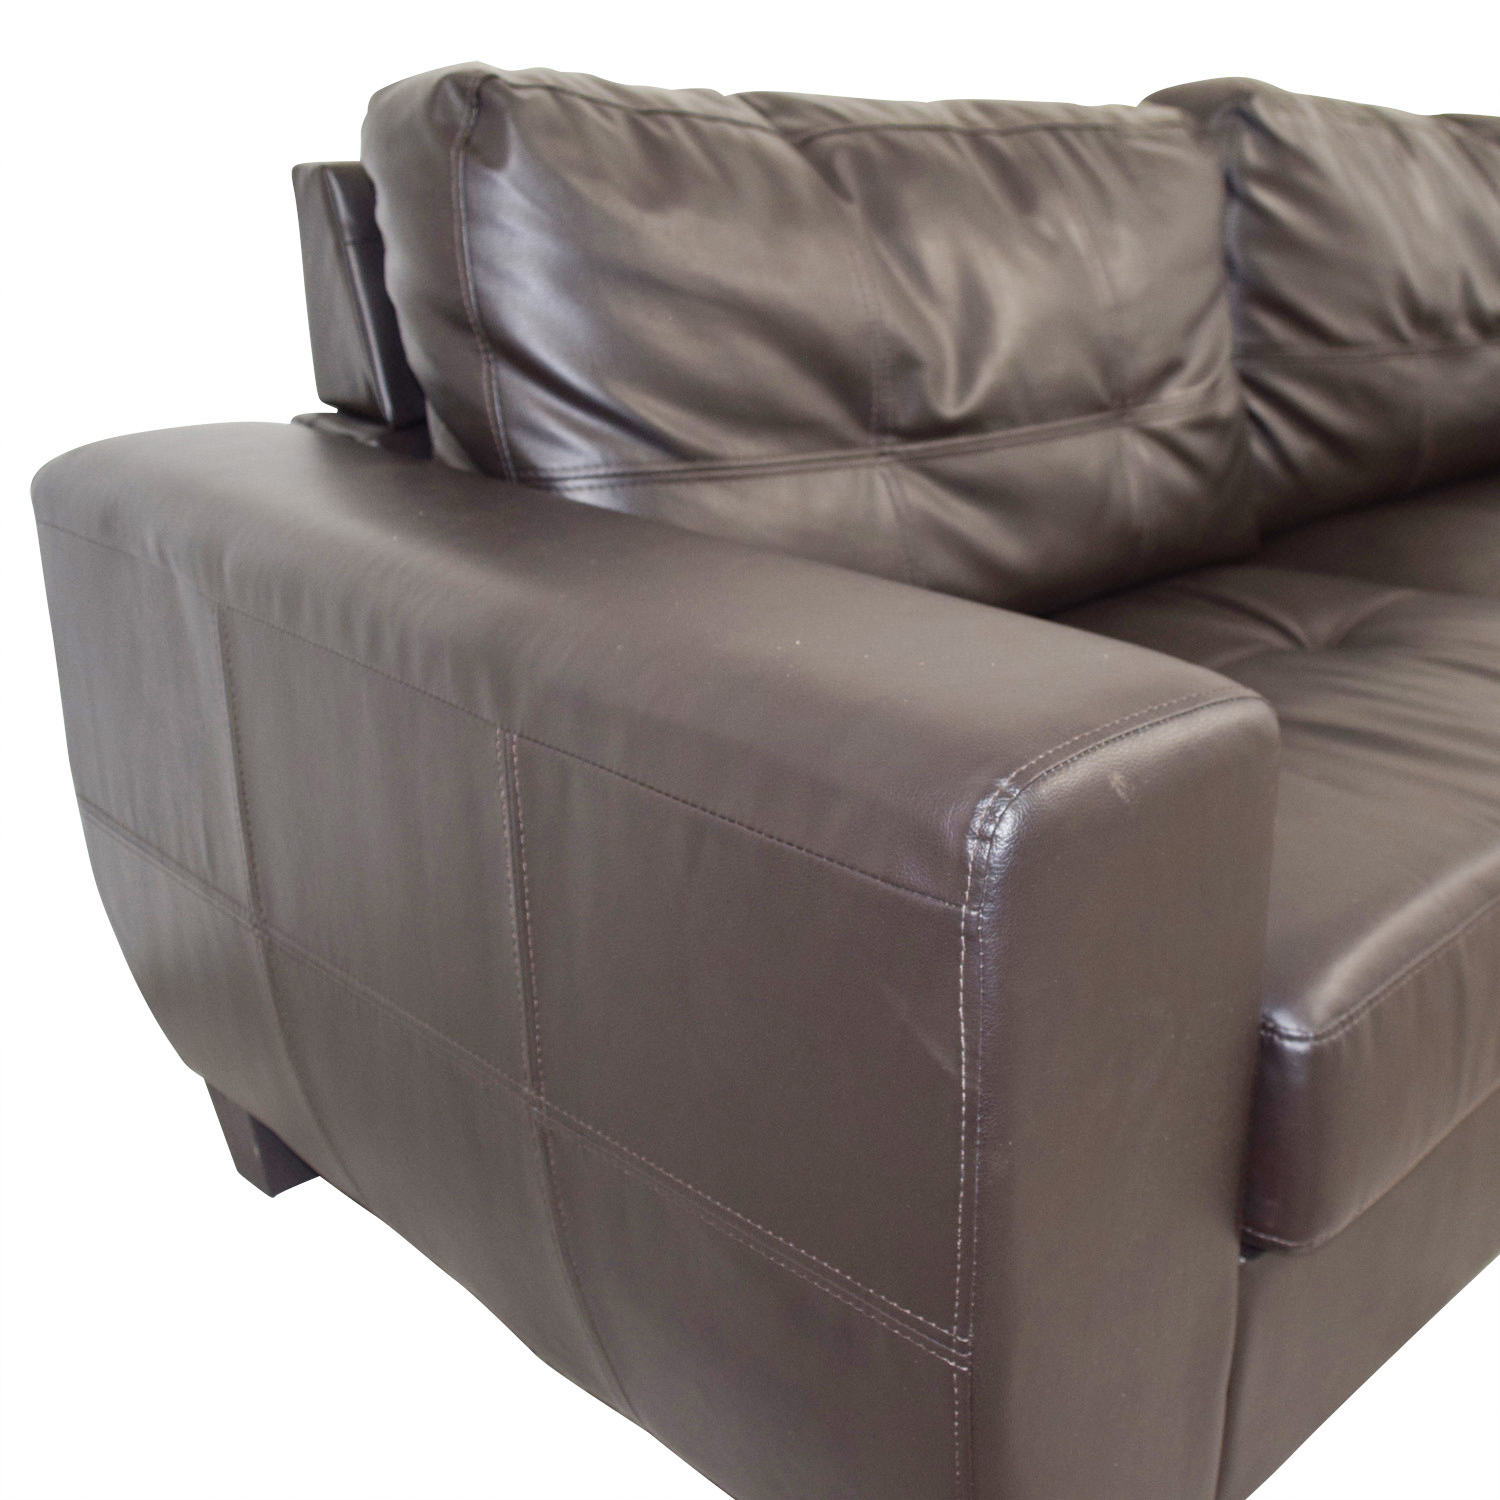 Brown Bonded Leather Two-Cushion Sofa dimensions